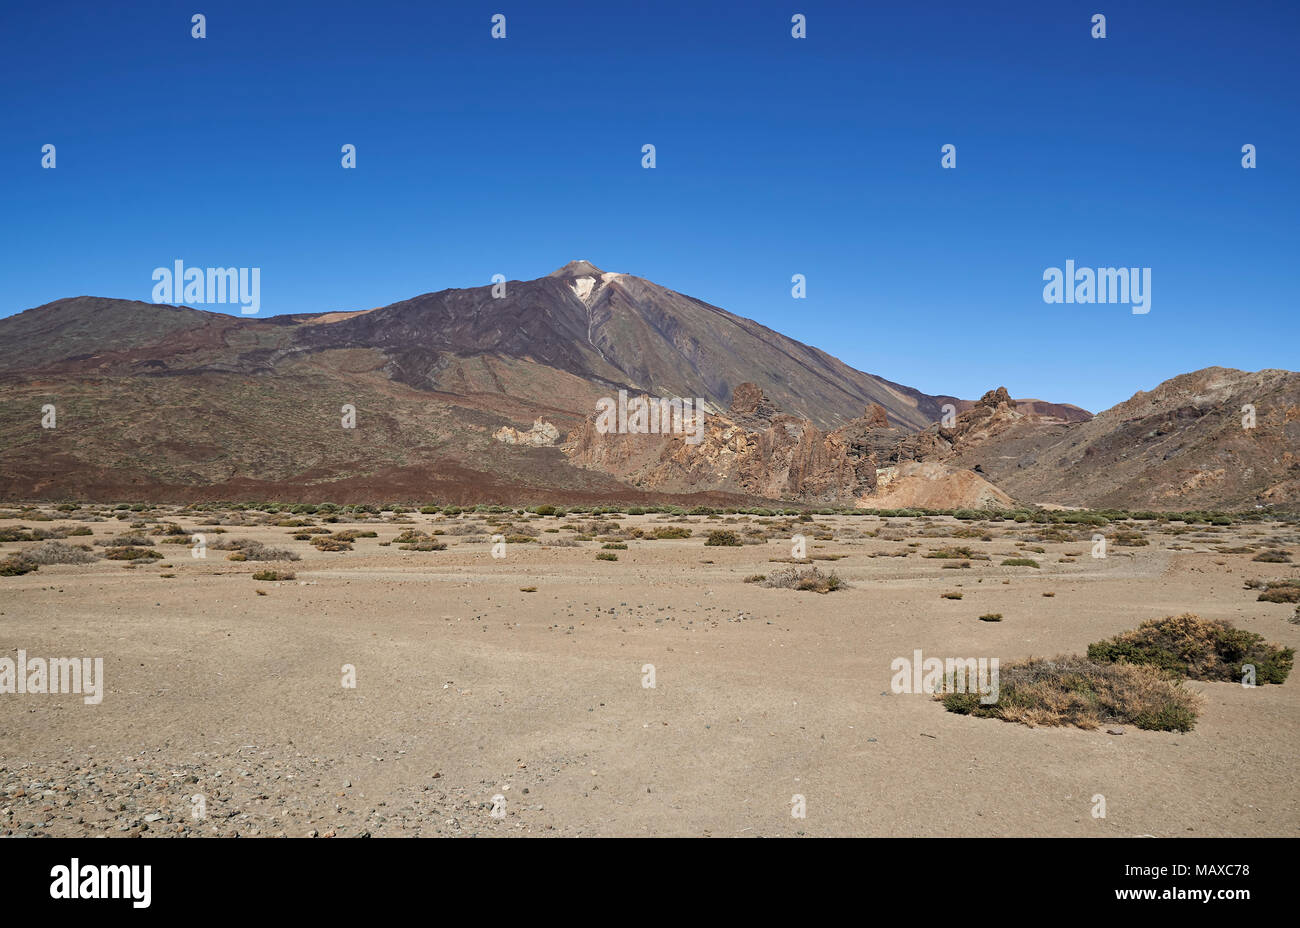 Mount Teide in Tenerife, rising up from the surrounding Desert floor, filled with sand and debris from previous Lava flows and eruptions. - Stock Image